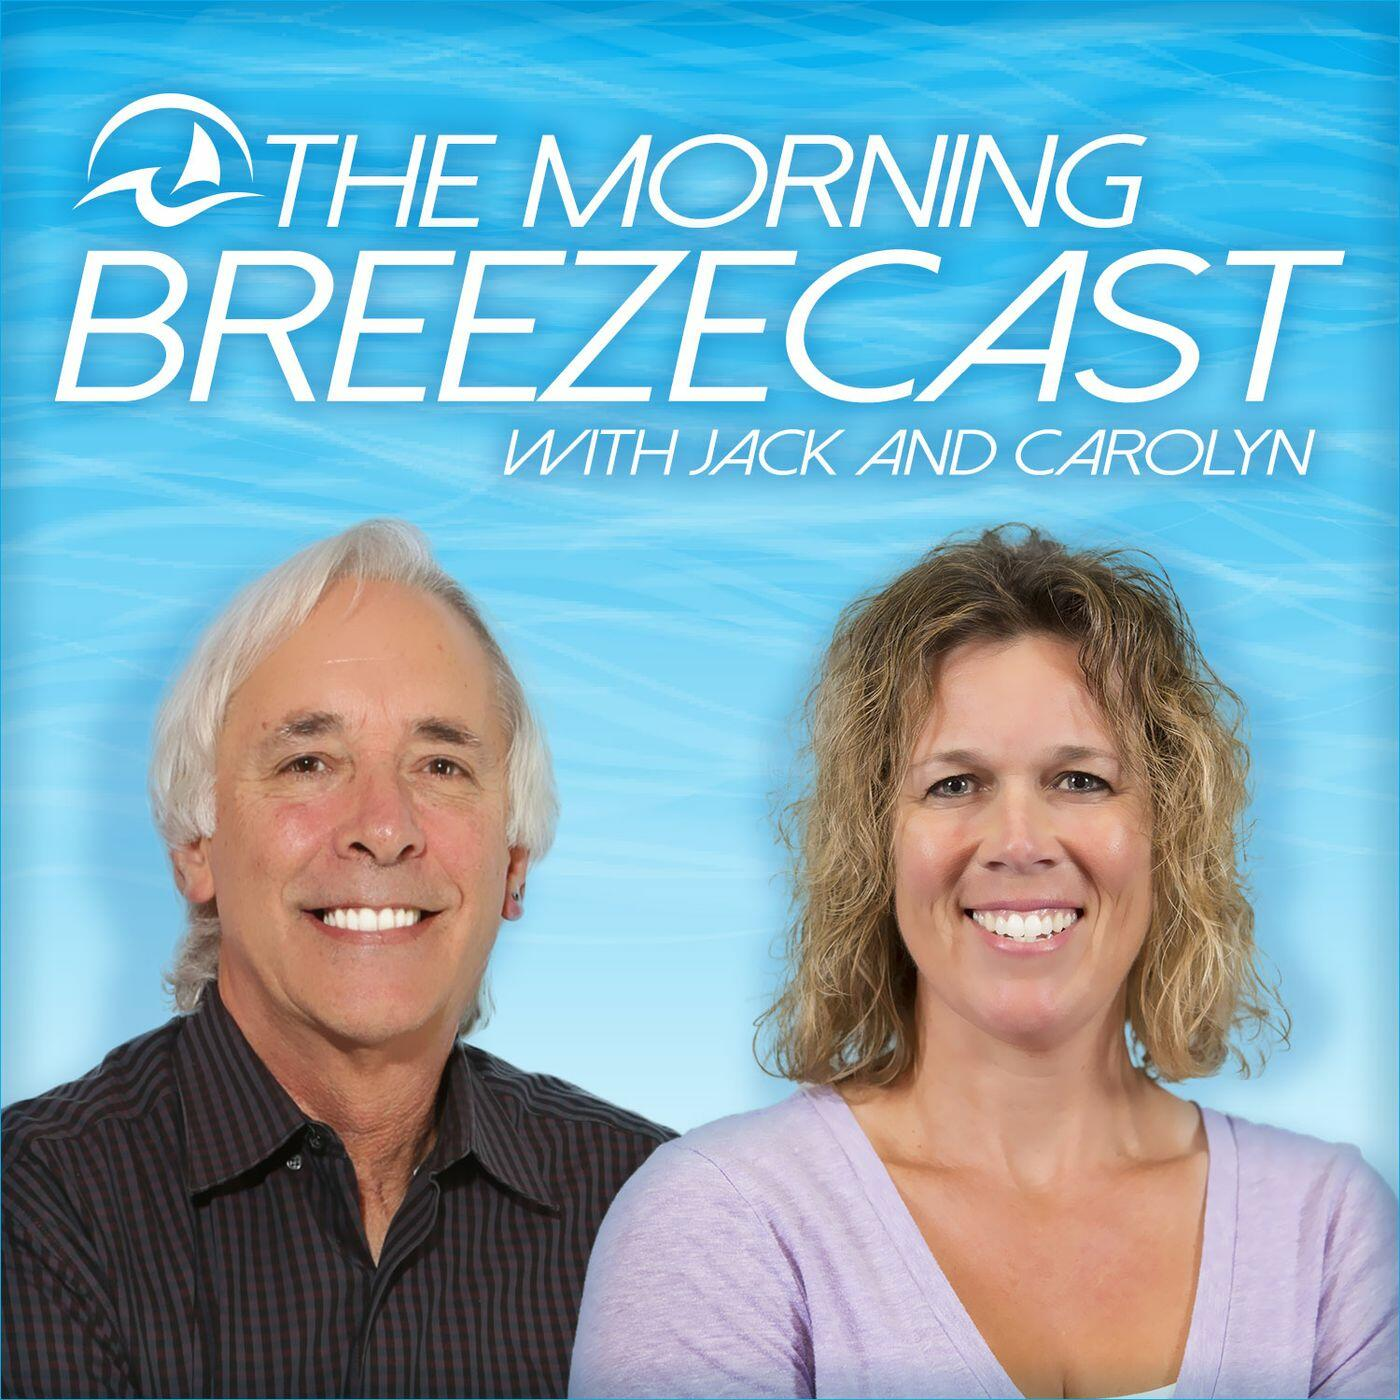 The Morning Breezecast